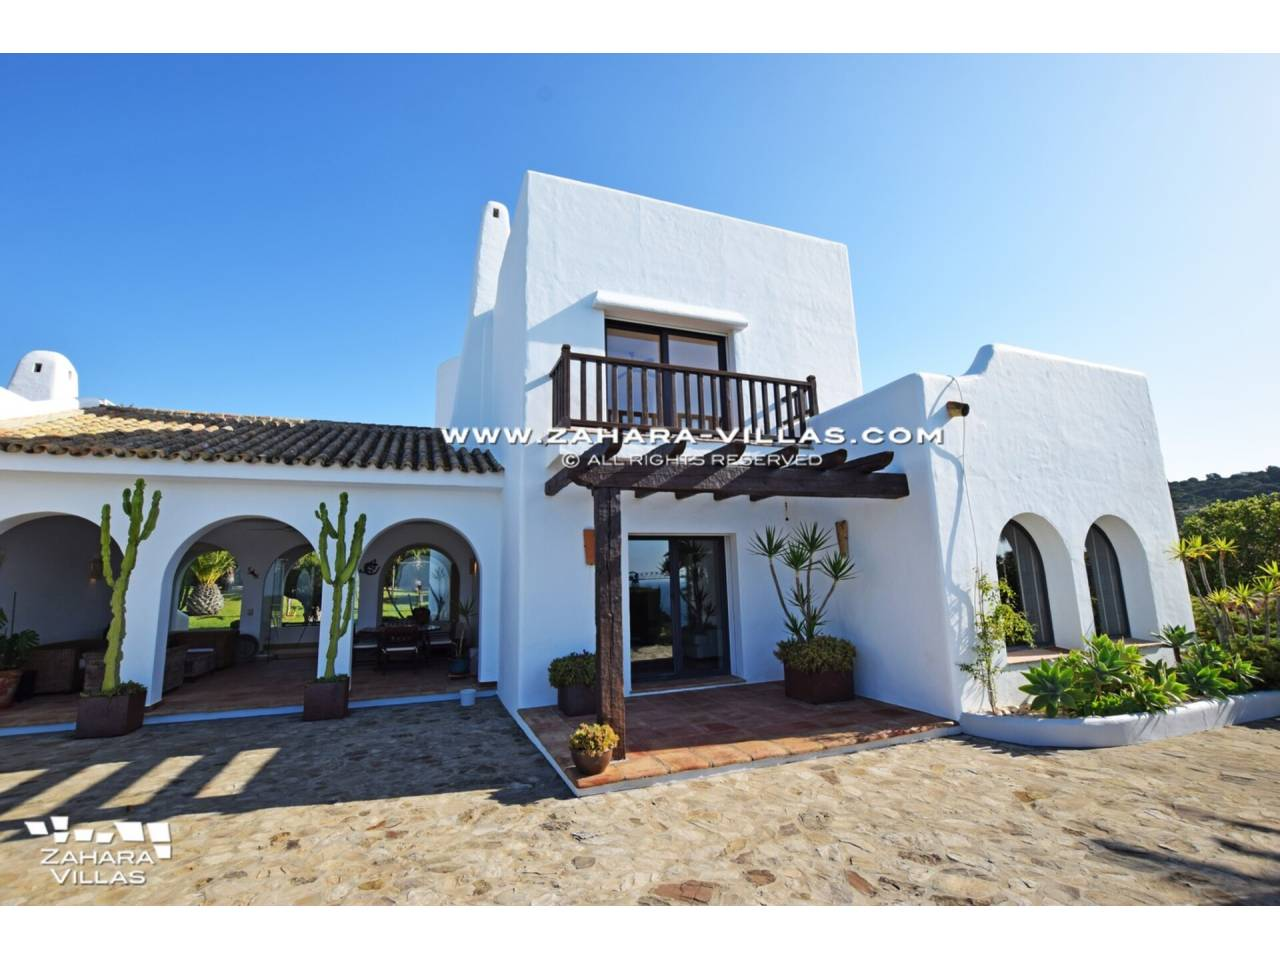 Imagen 46 de Wonderful Villa for sale in Playa de los Alemanes - Atlanterra